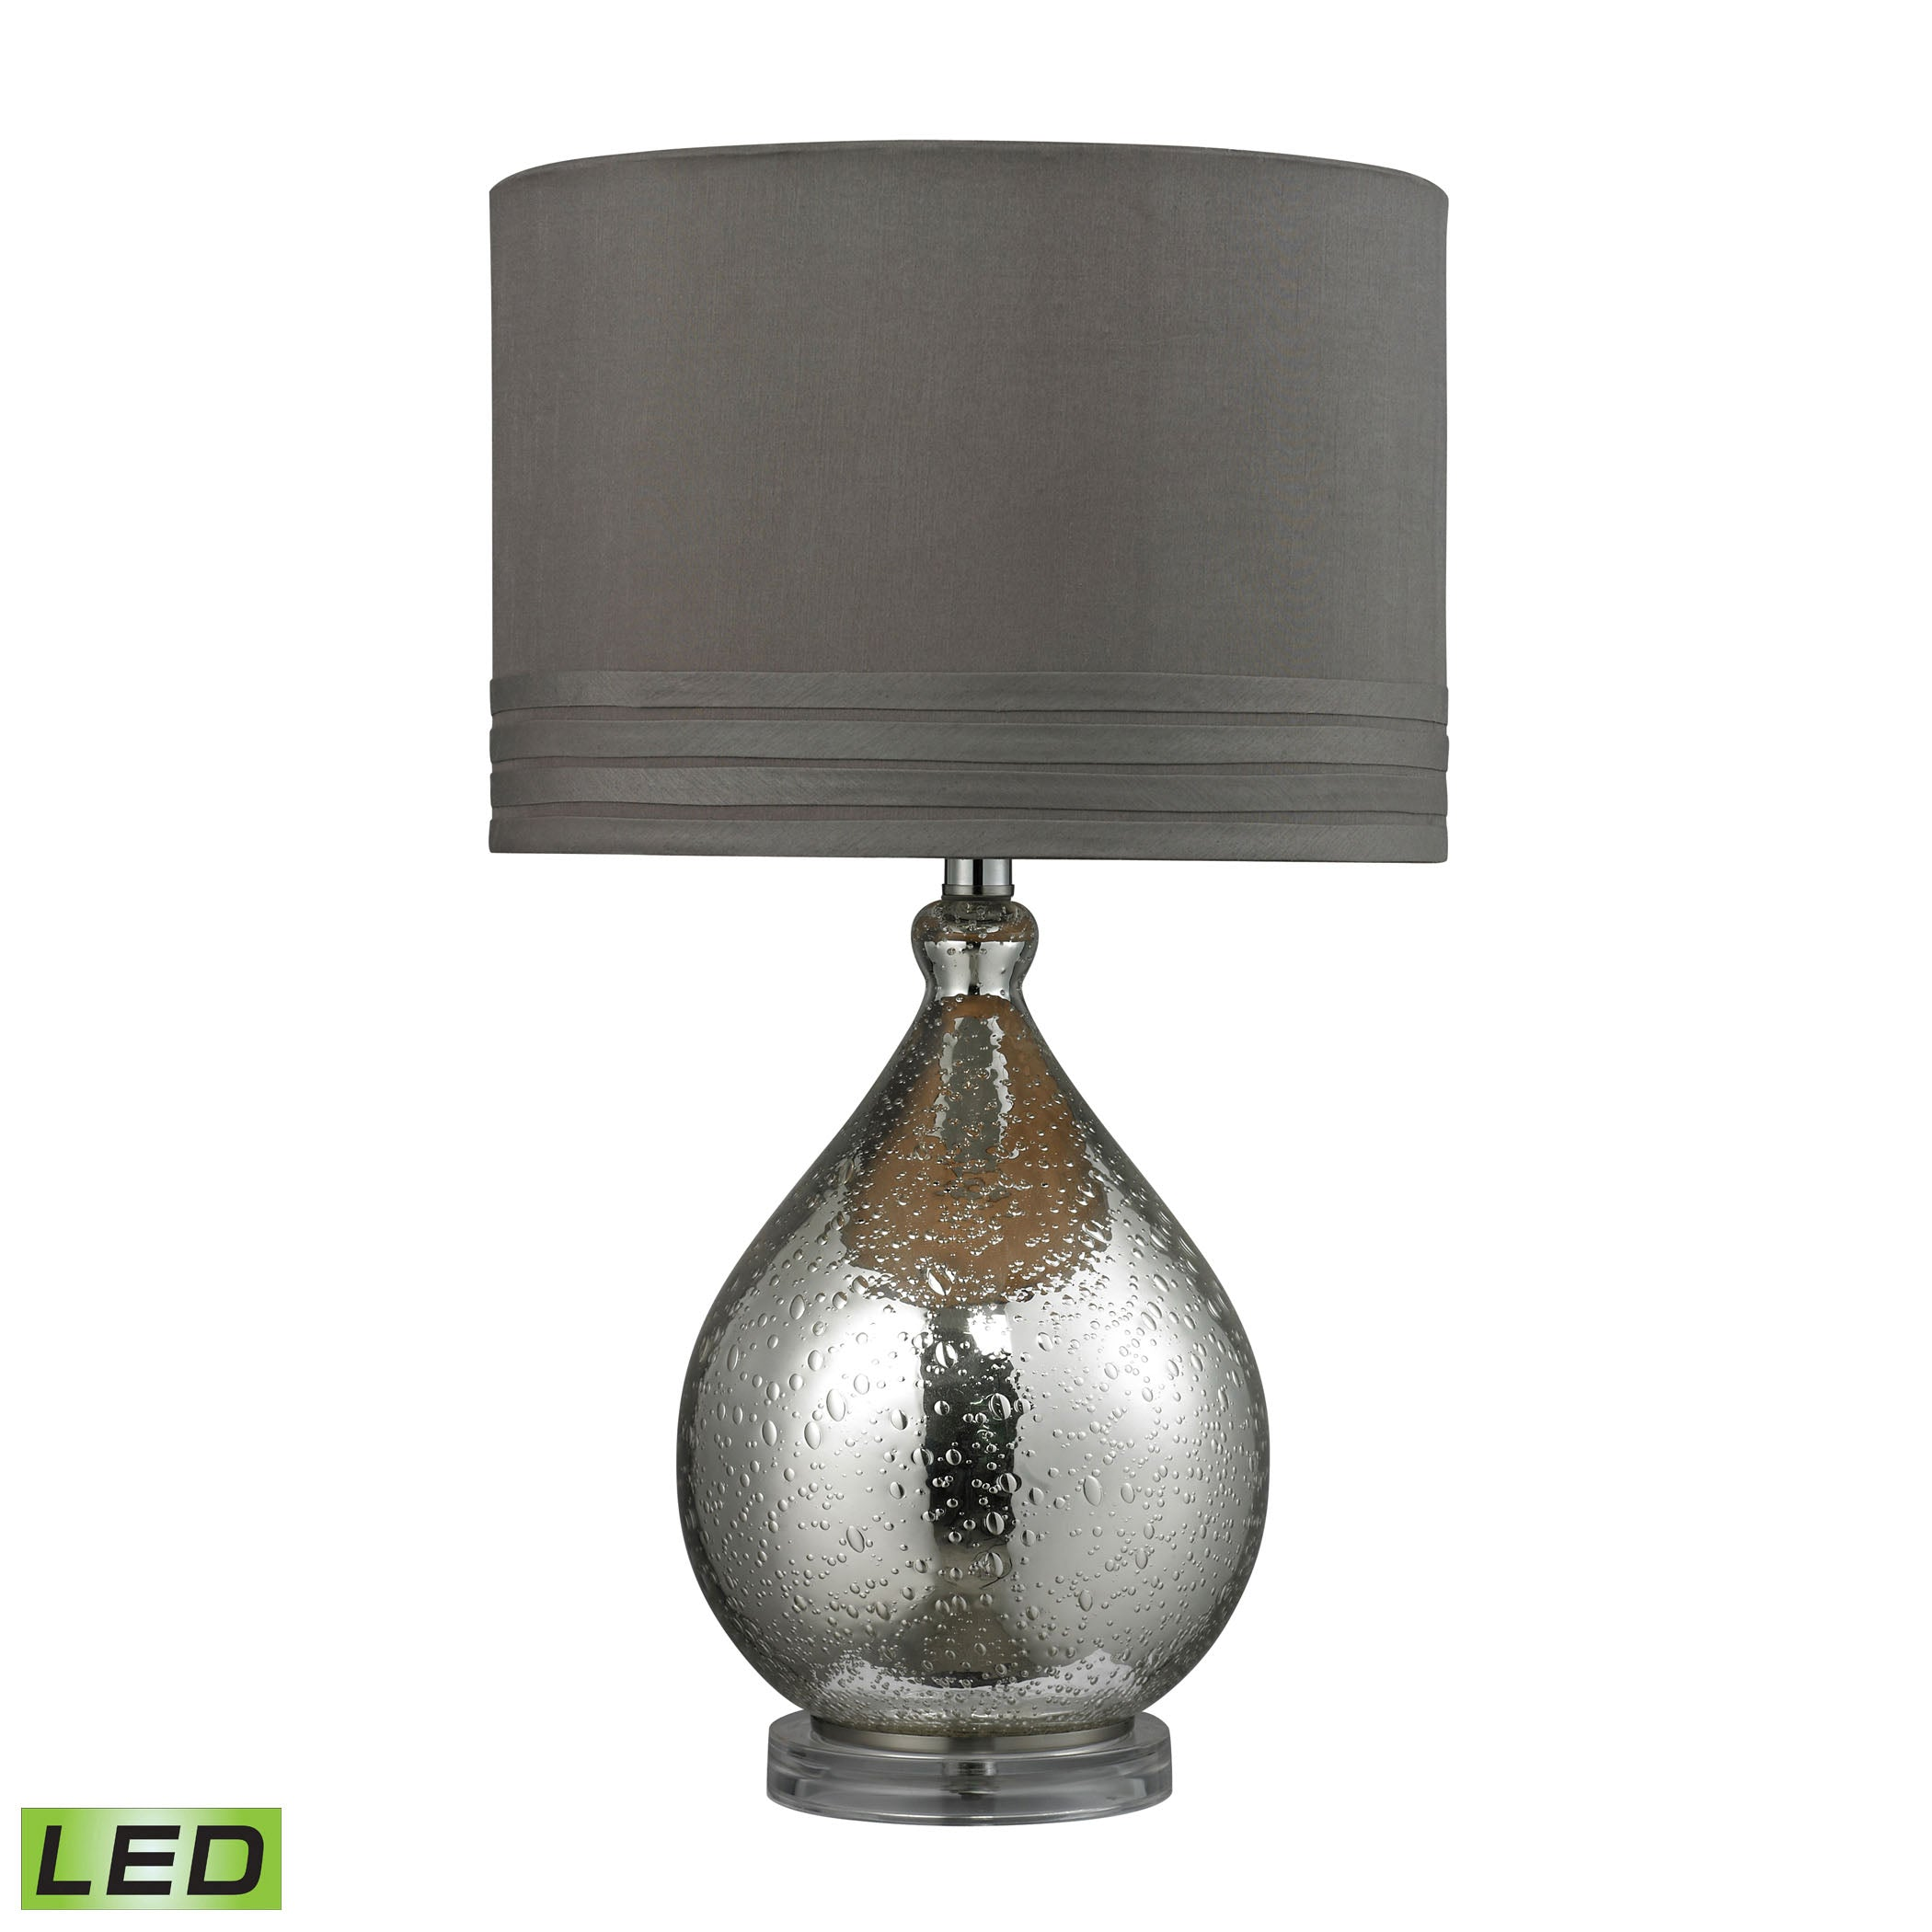 Beautiful Dimond Lighting  Bubble Glass LED Table Lamp in Mercury Plate Finish  in  Acrylic, Glass